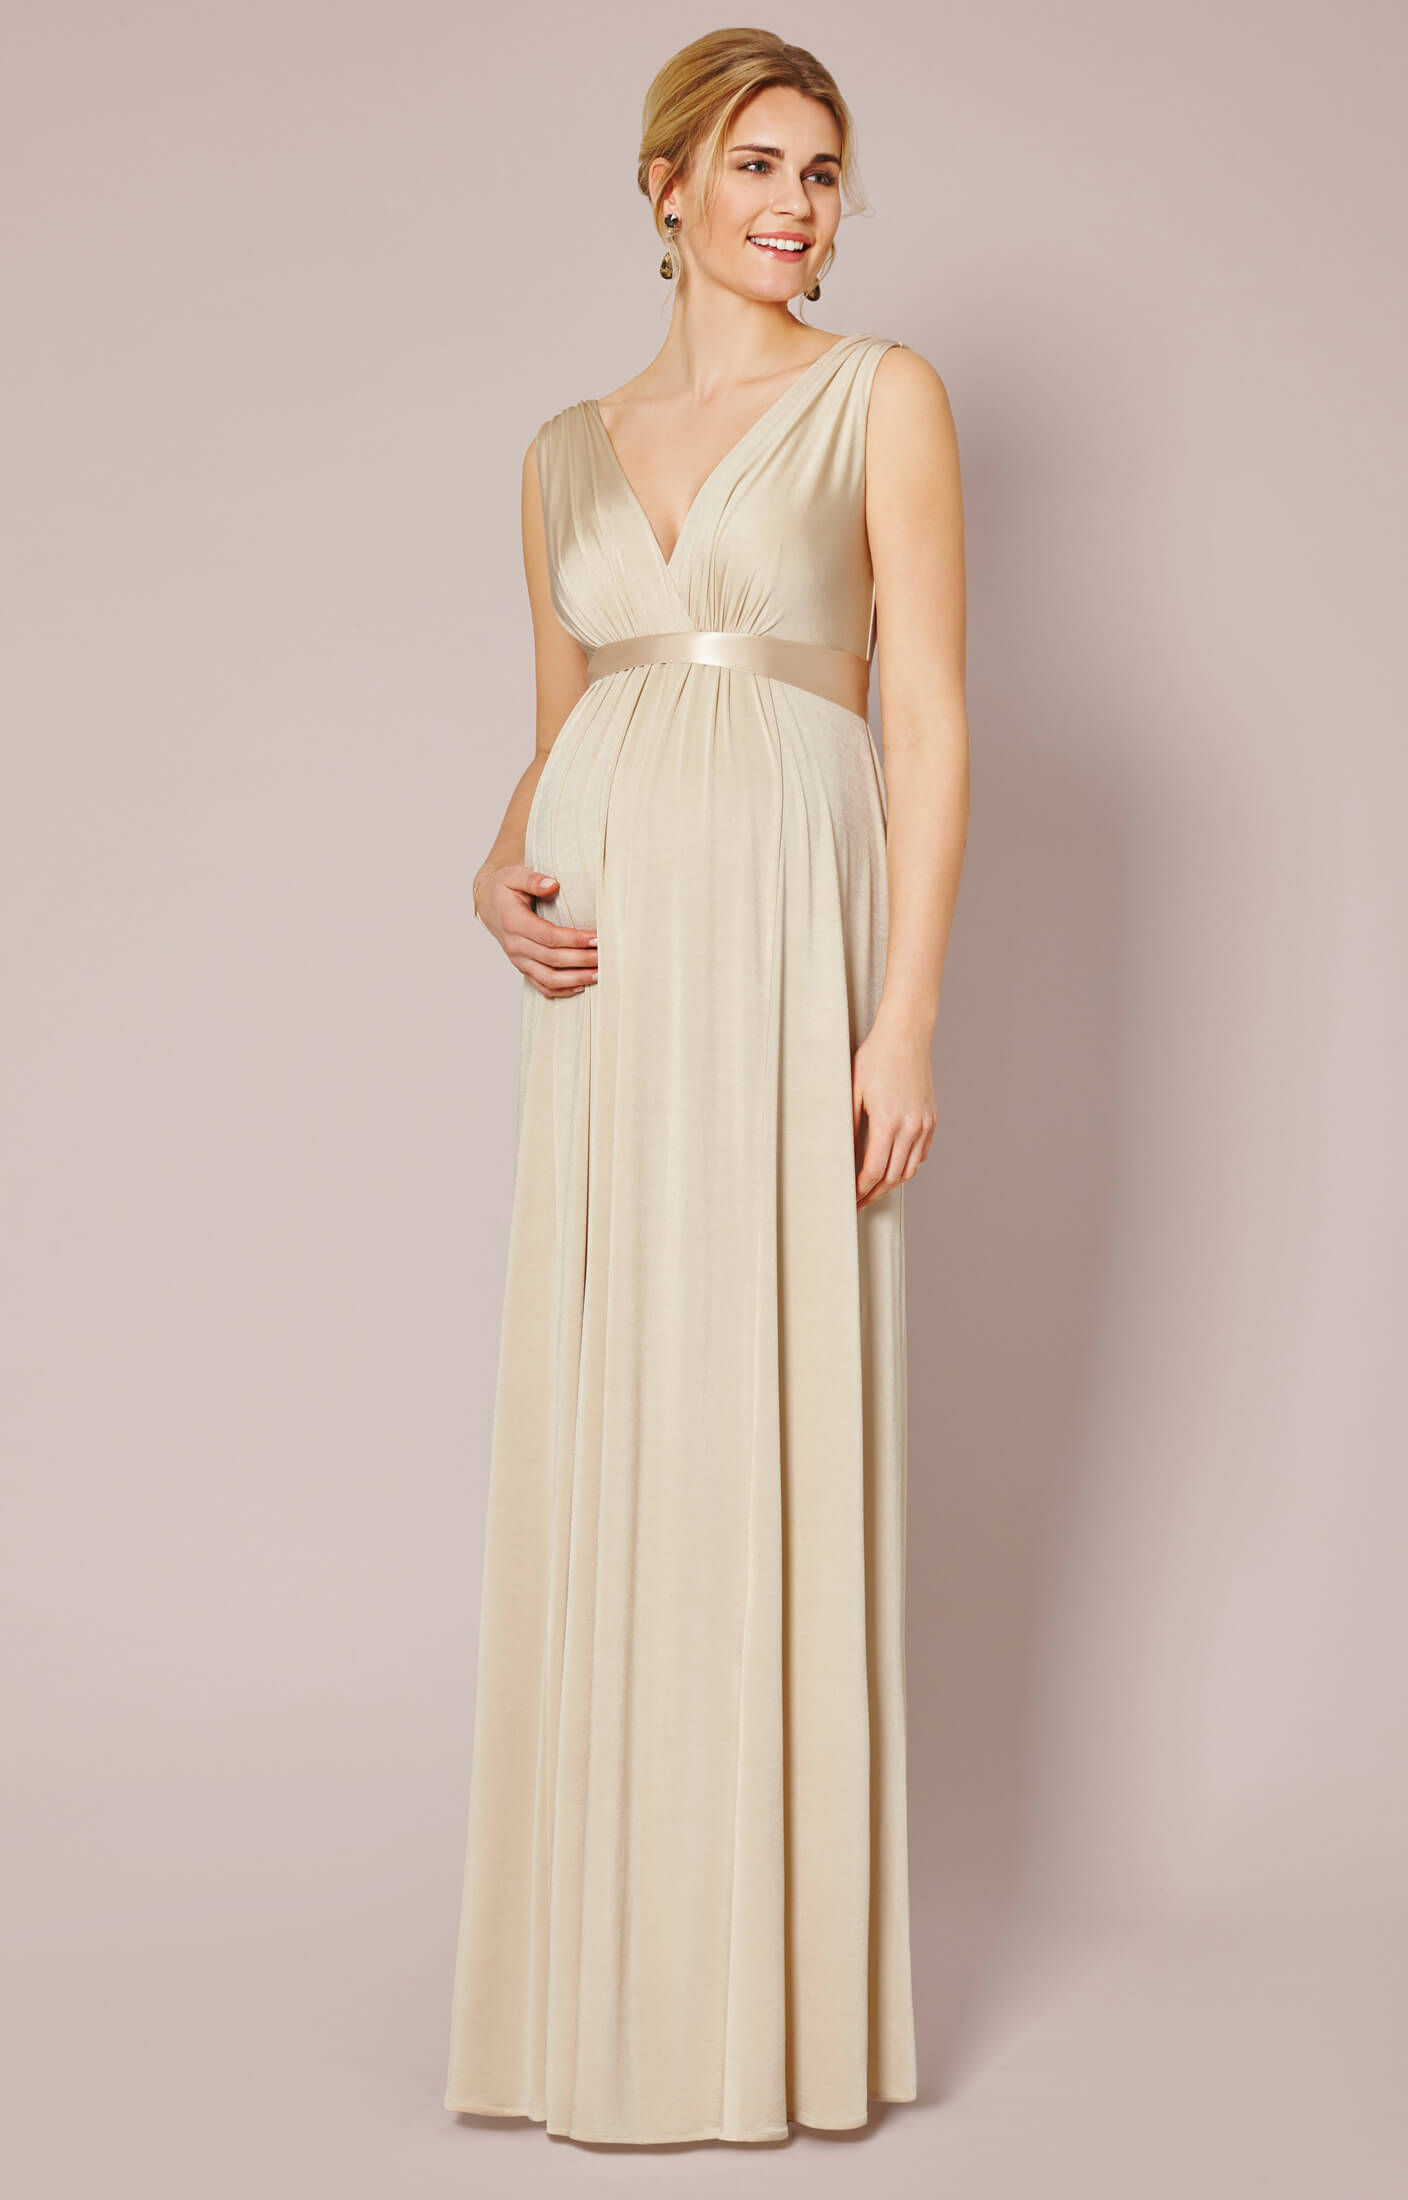 Anastasia maternity gown gold dust maternity wedding for Pregnancy dress for wedding